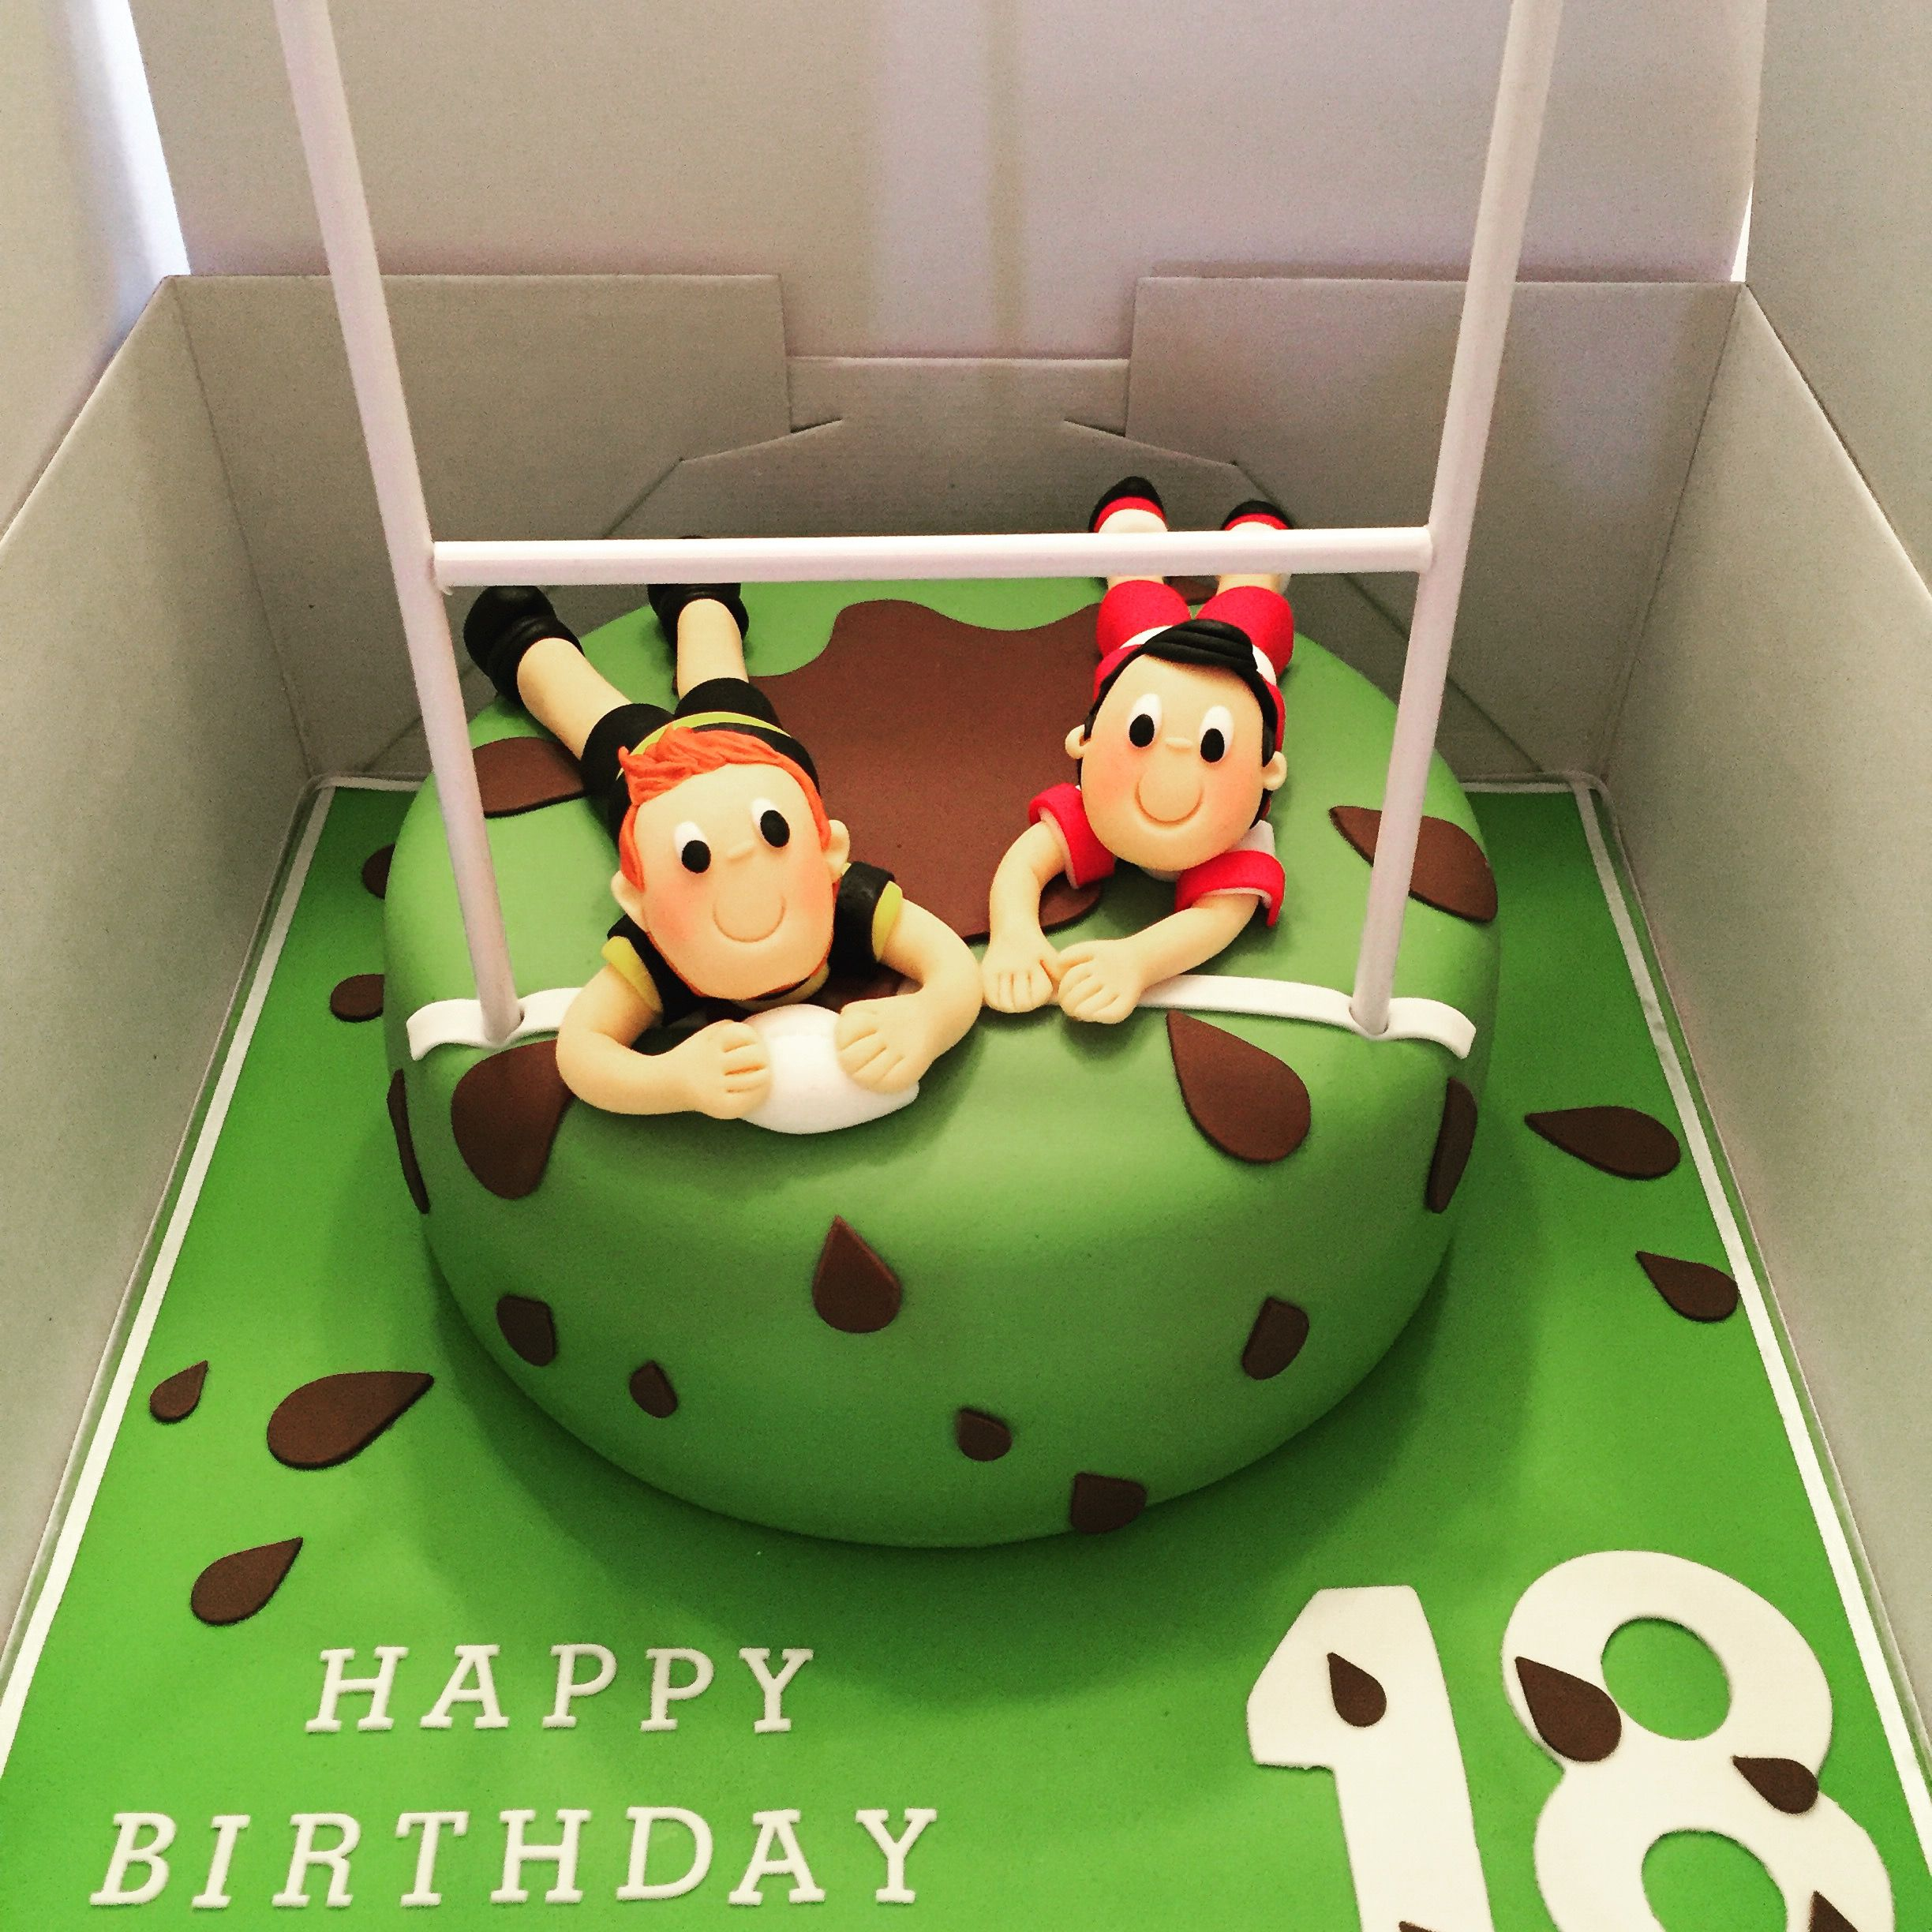 rugby theme birthday cake kaihariels birthday pinterest gateau anniversaire rugby et g teau. Black Bedroom Furniture Sets. Home Design Ideas